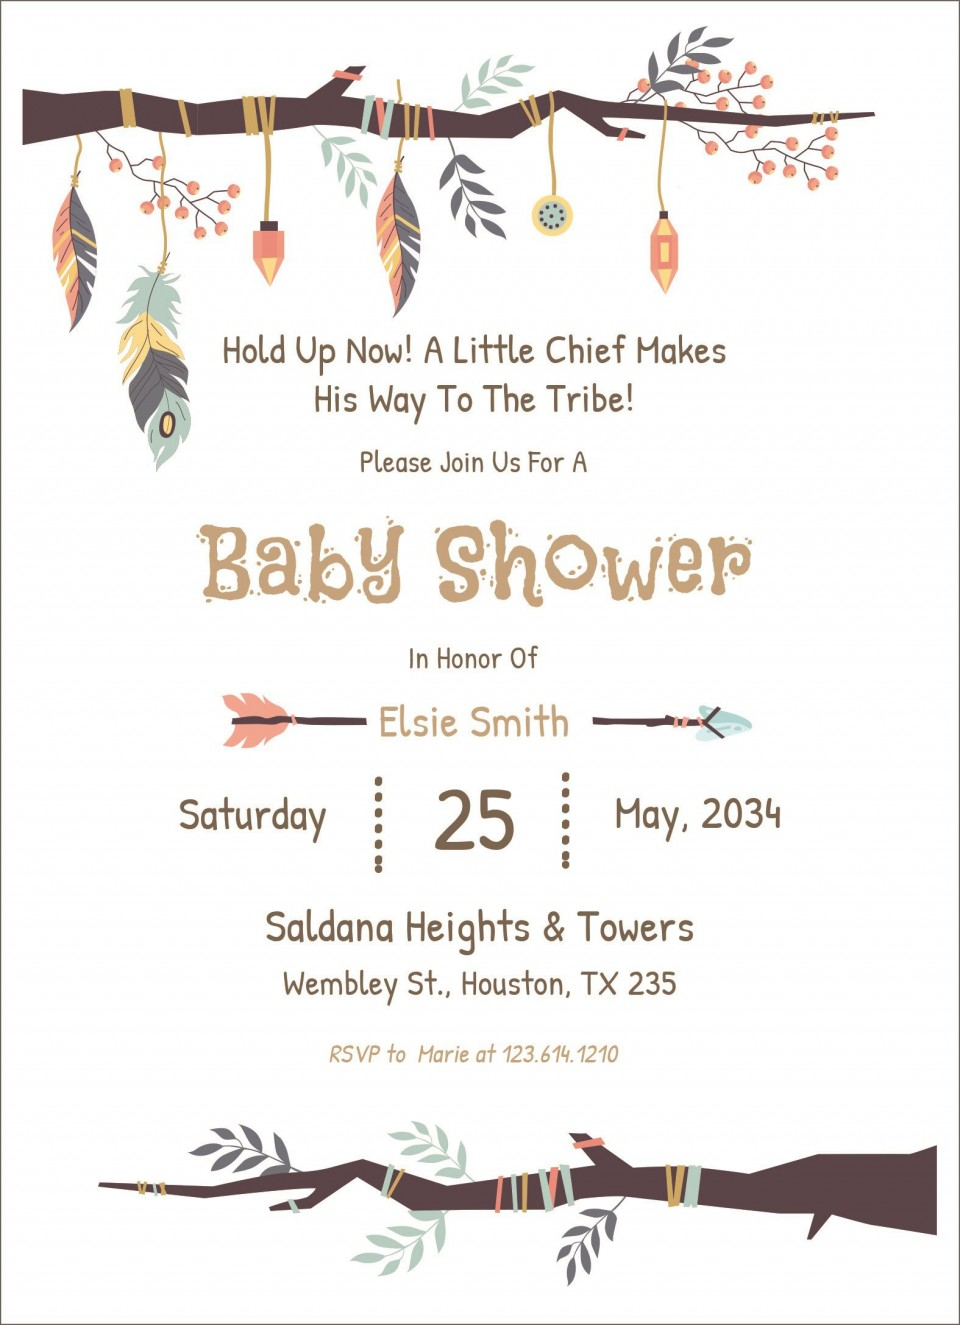 005 Amazing Free Baby Shower Card Template For Word High Def 960